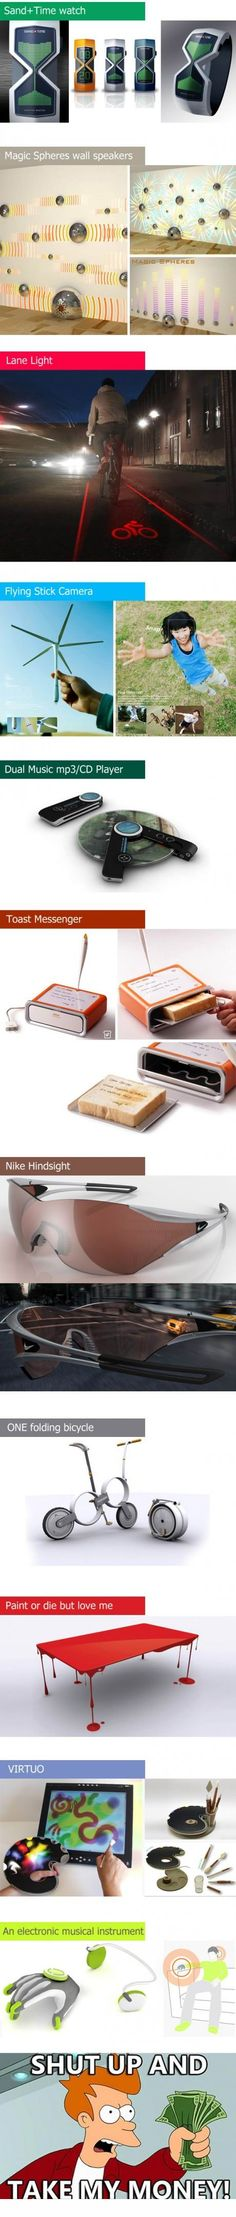 This is what our world is coming to<3 Shut-up and take my money